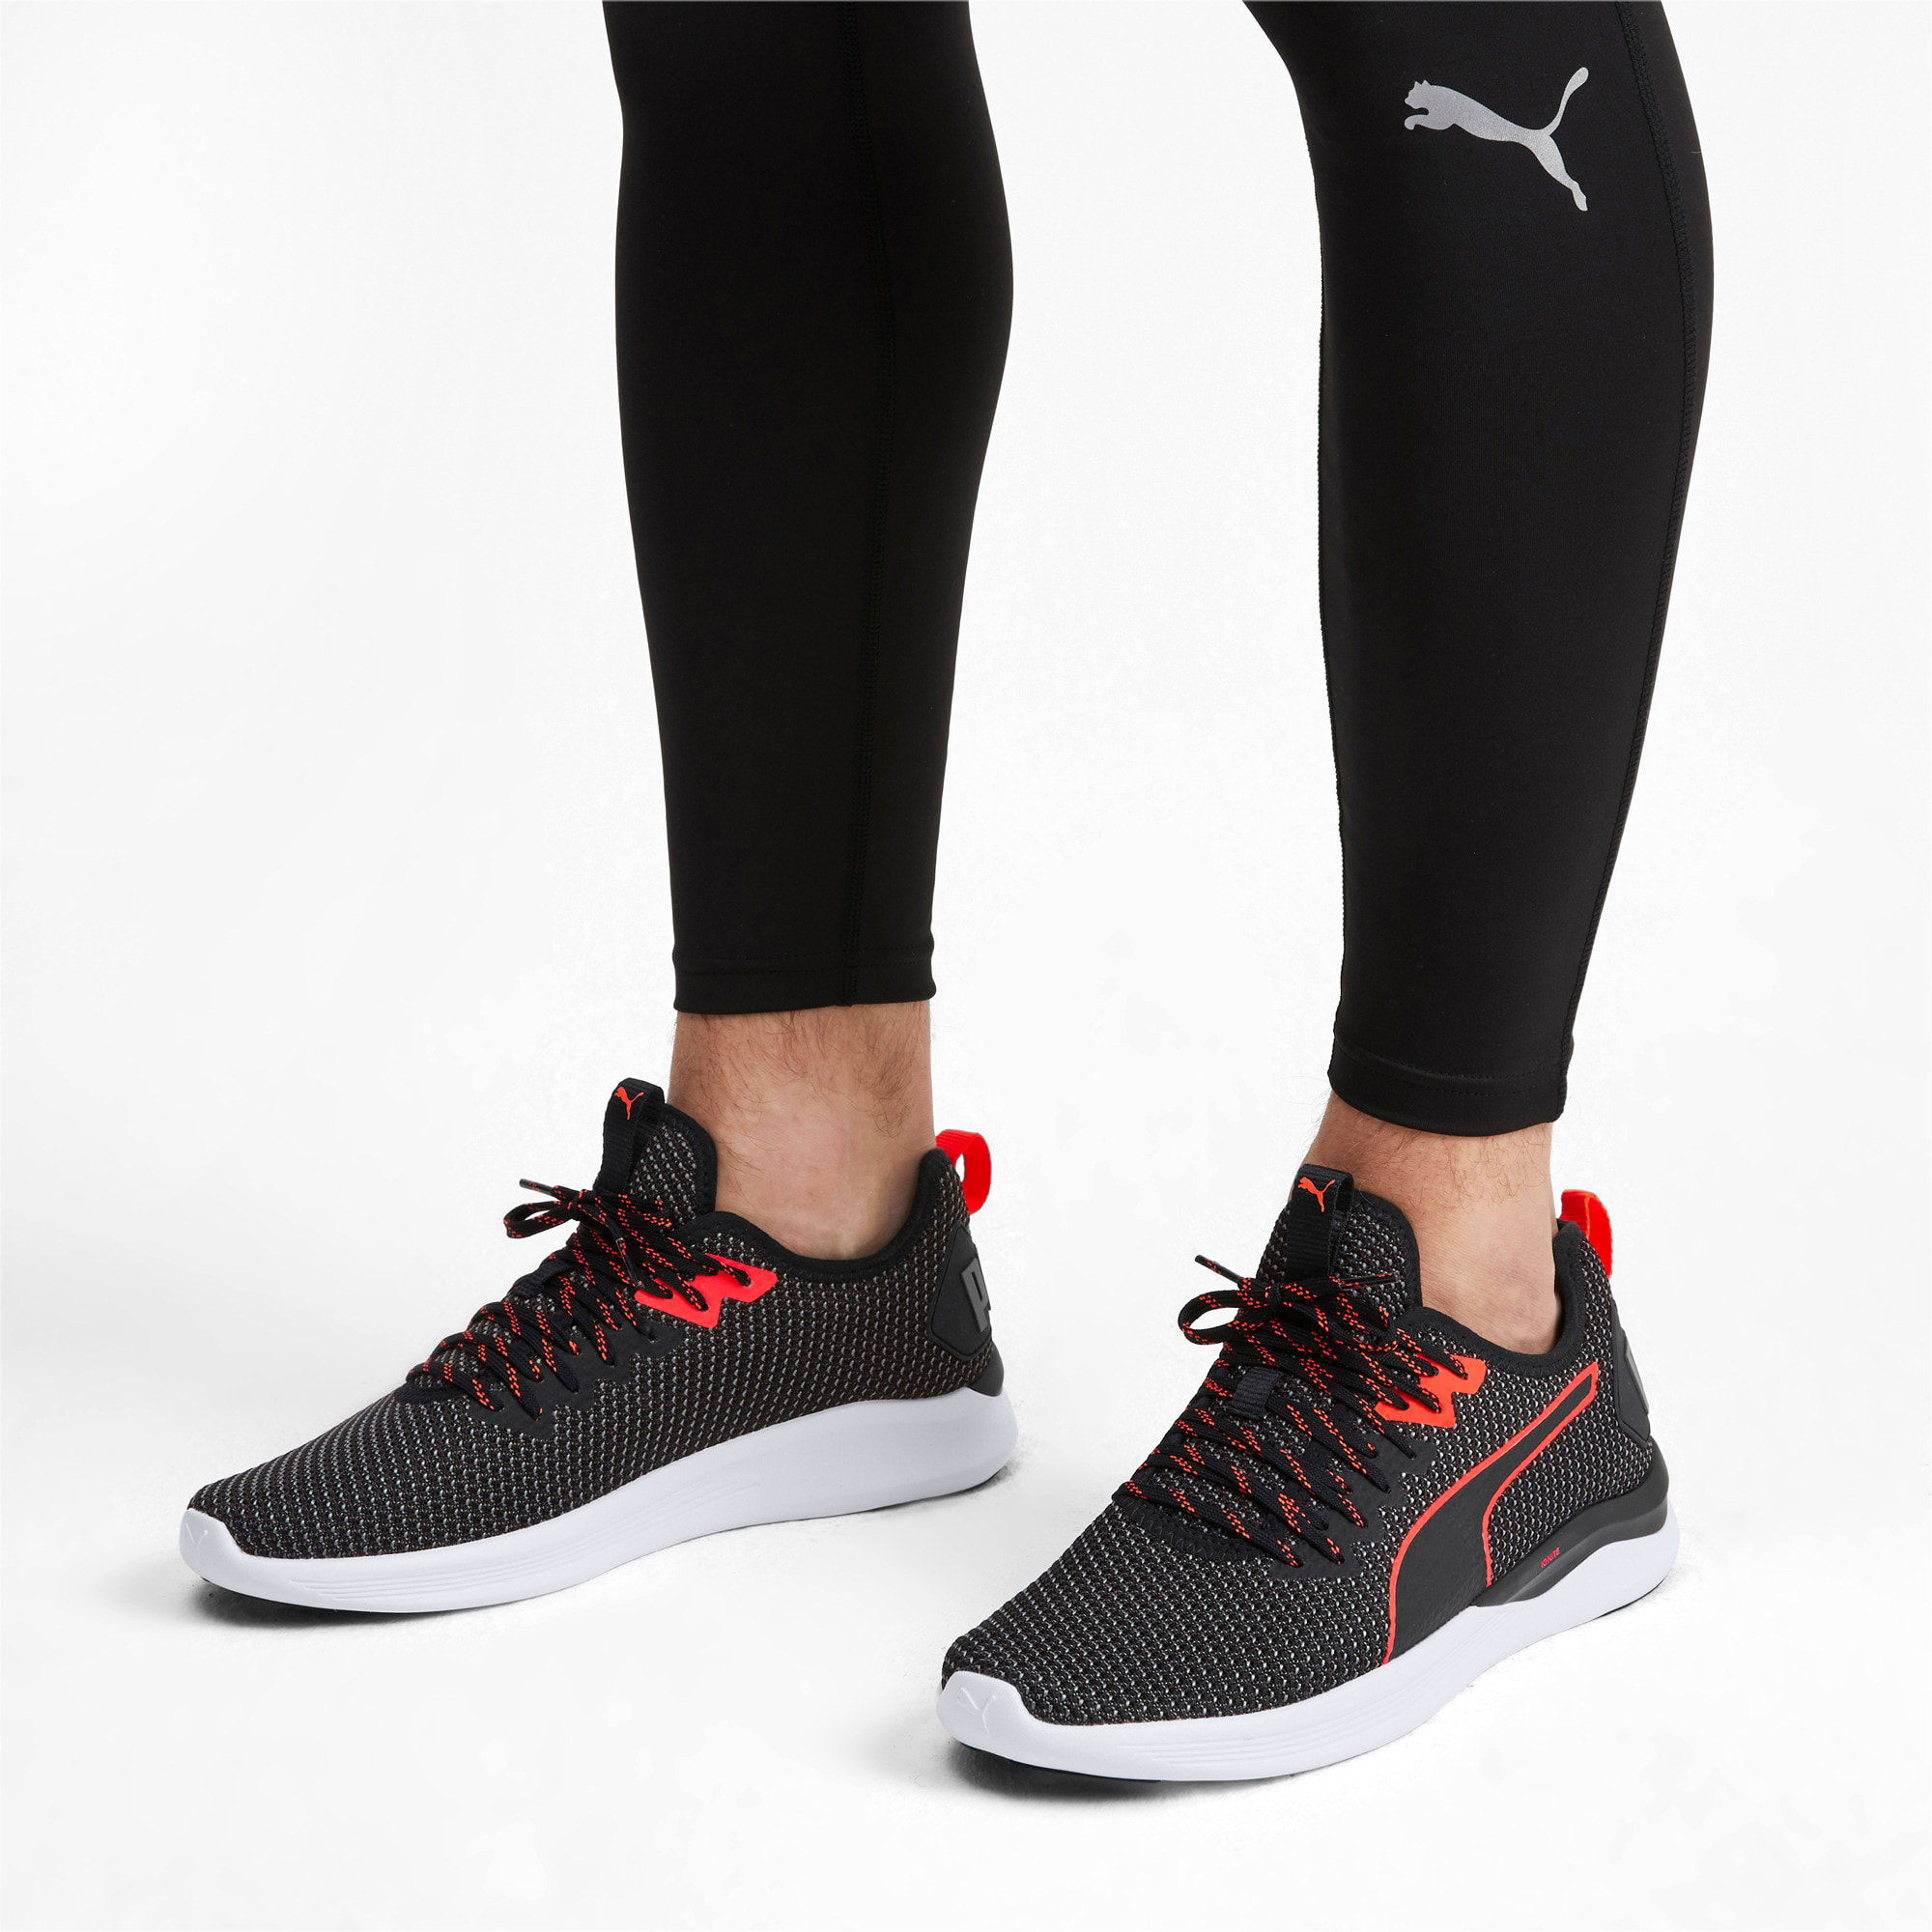 Thumbnail 2 of Scarpe Running IGNITE Flash FS uomo, Puma Black-Nrgy Red, medium